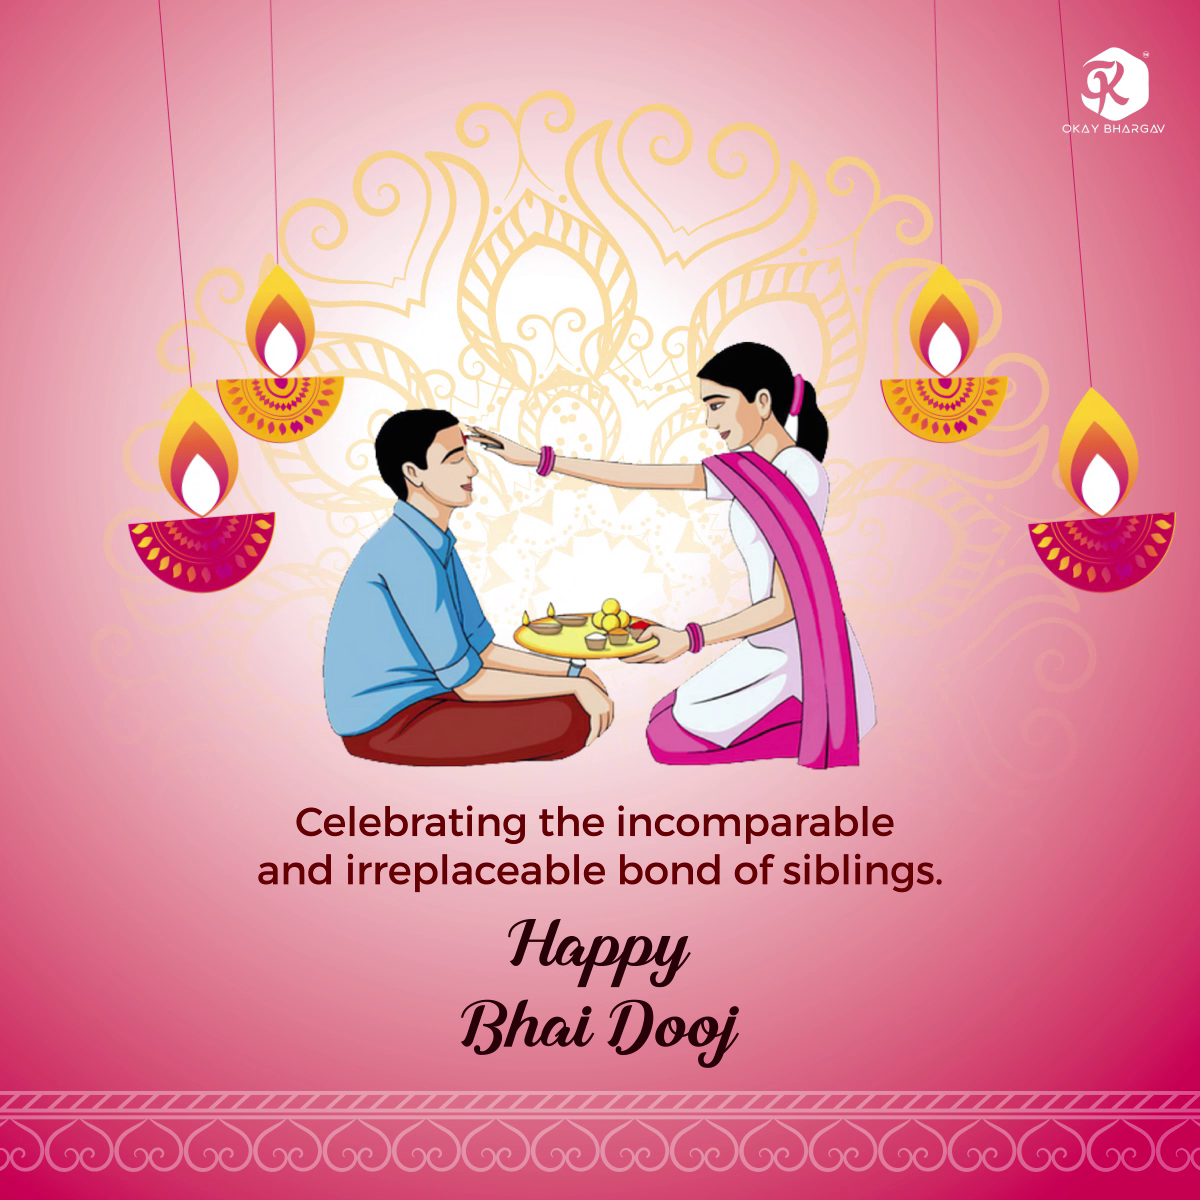 #1 Bhai Dooj  free after effects templates - after effects - Okay Bhargav